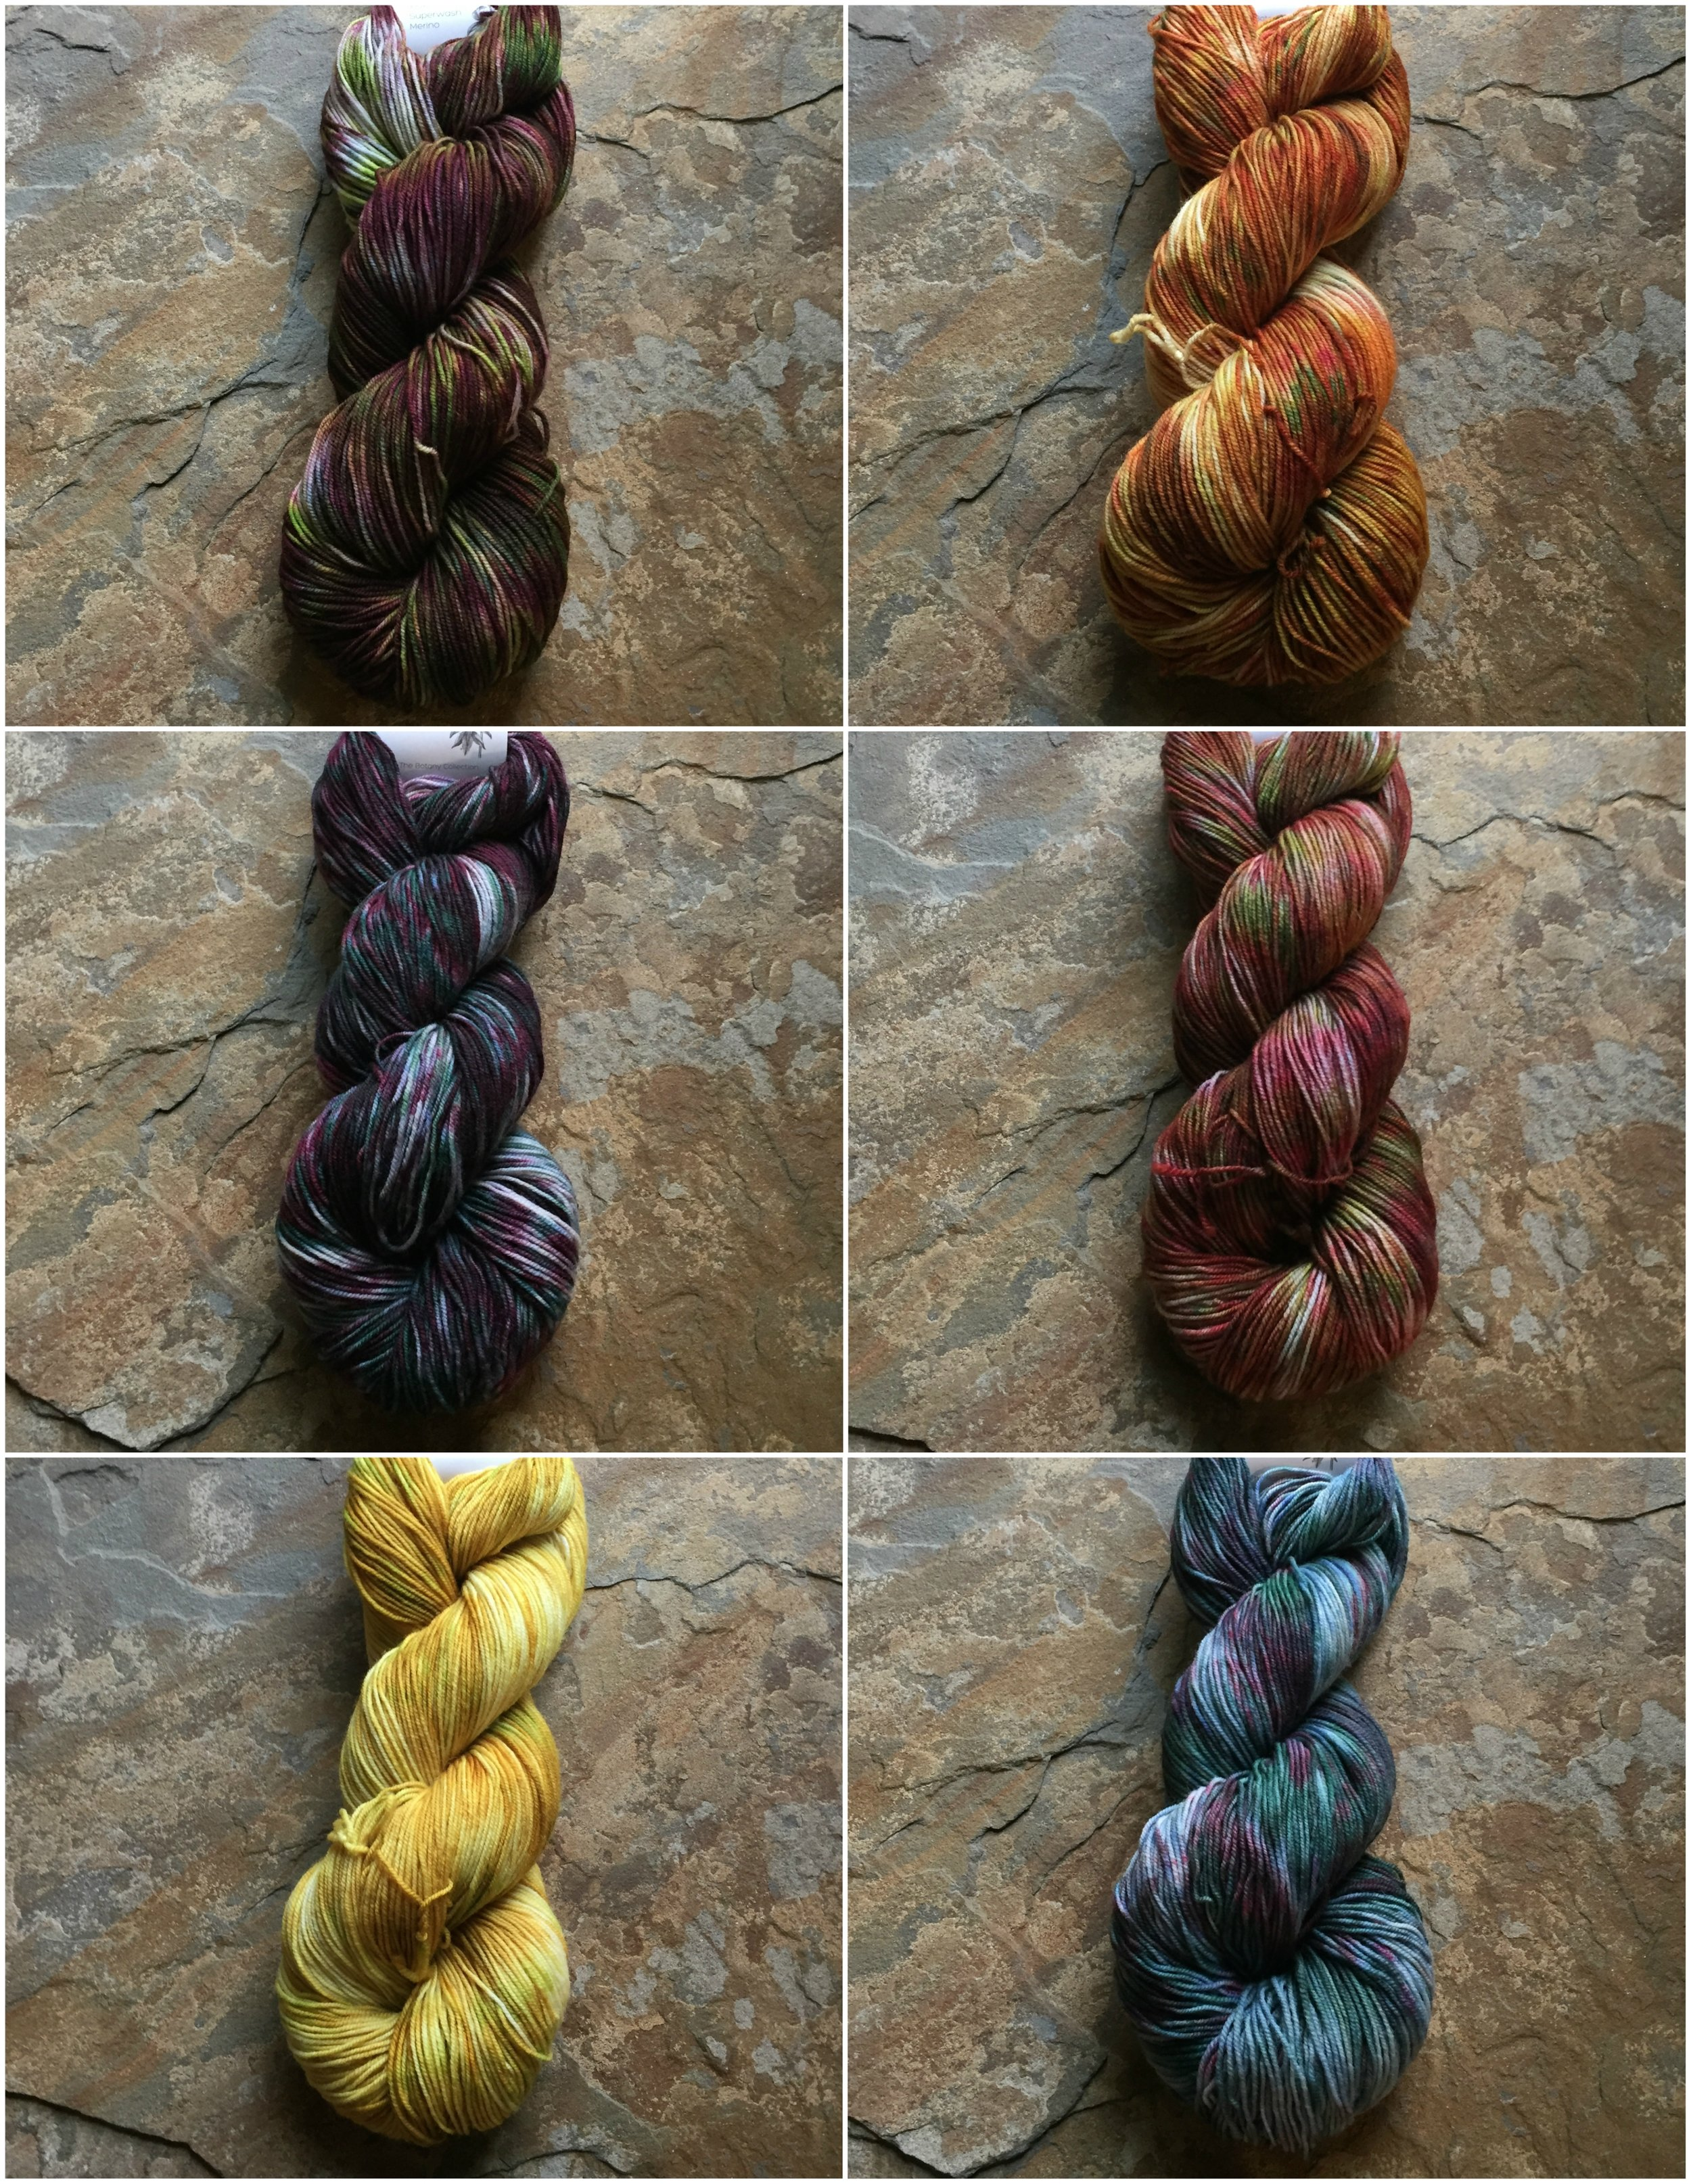 The Botany Collection Colorways. Left Column from top to bottom: Jack in the Pulpit, Elderberry, and Wild Mustard. Right Column from top to bottom: California Poppy, Prickly Pear Cactus, and Succulents.